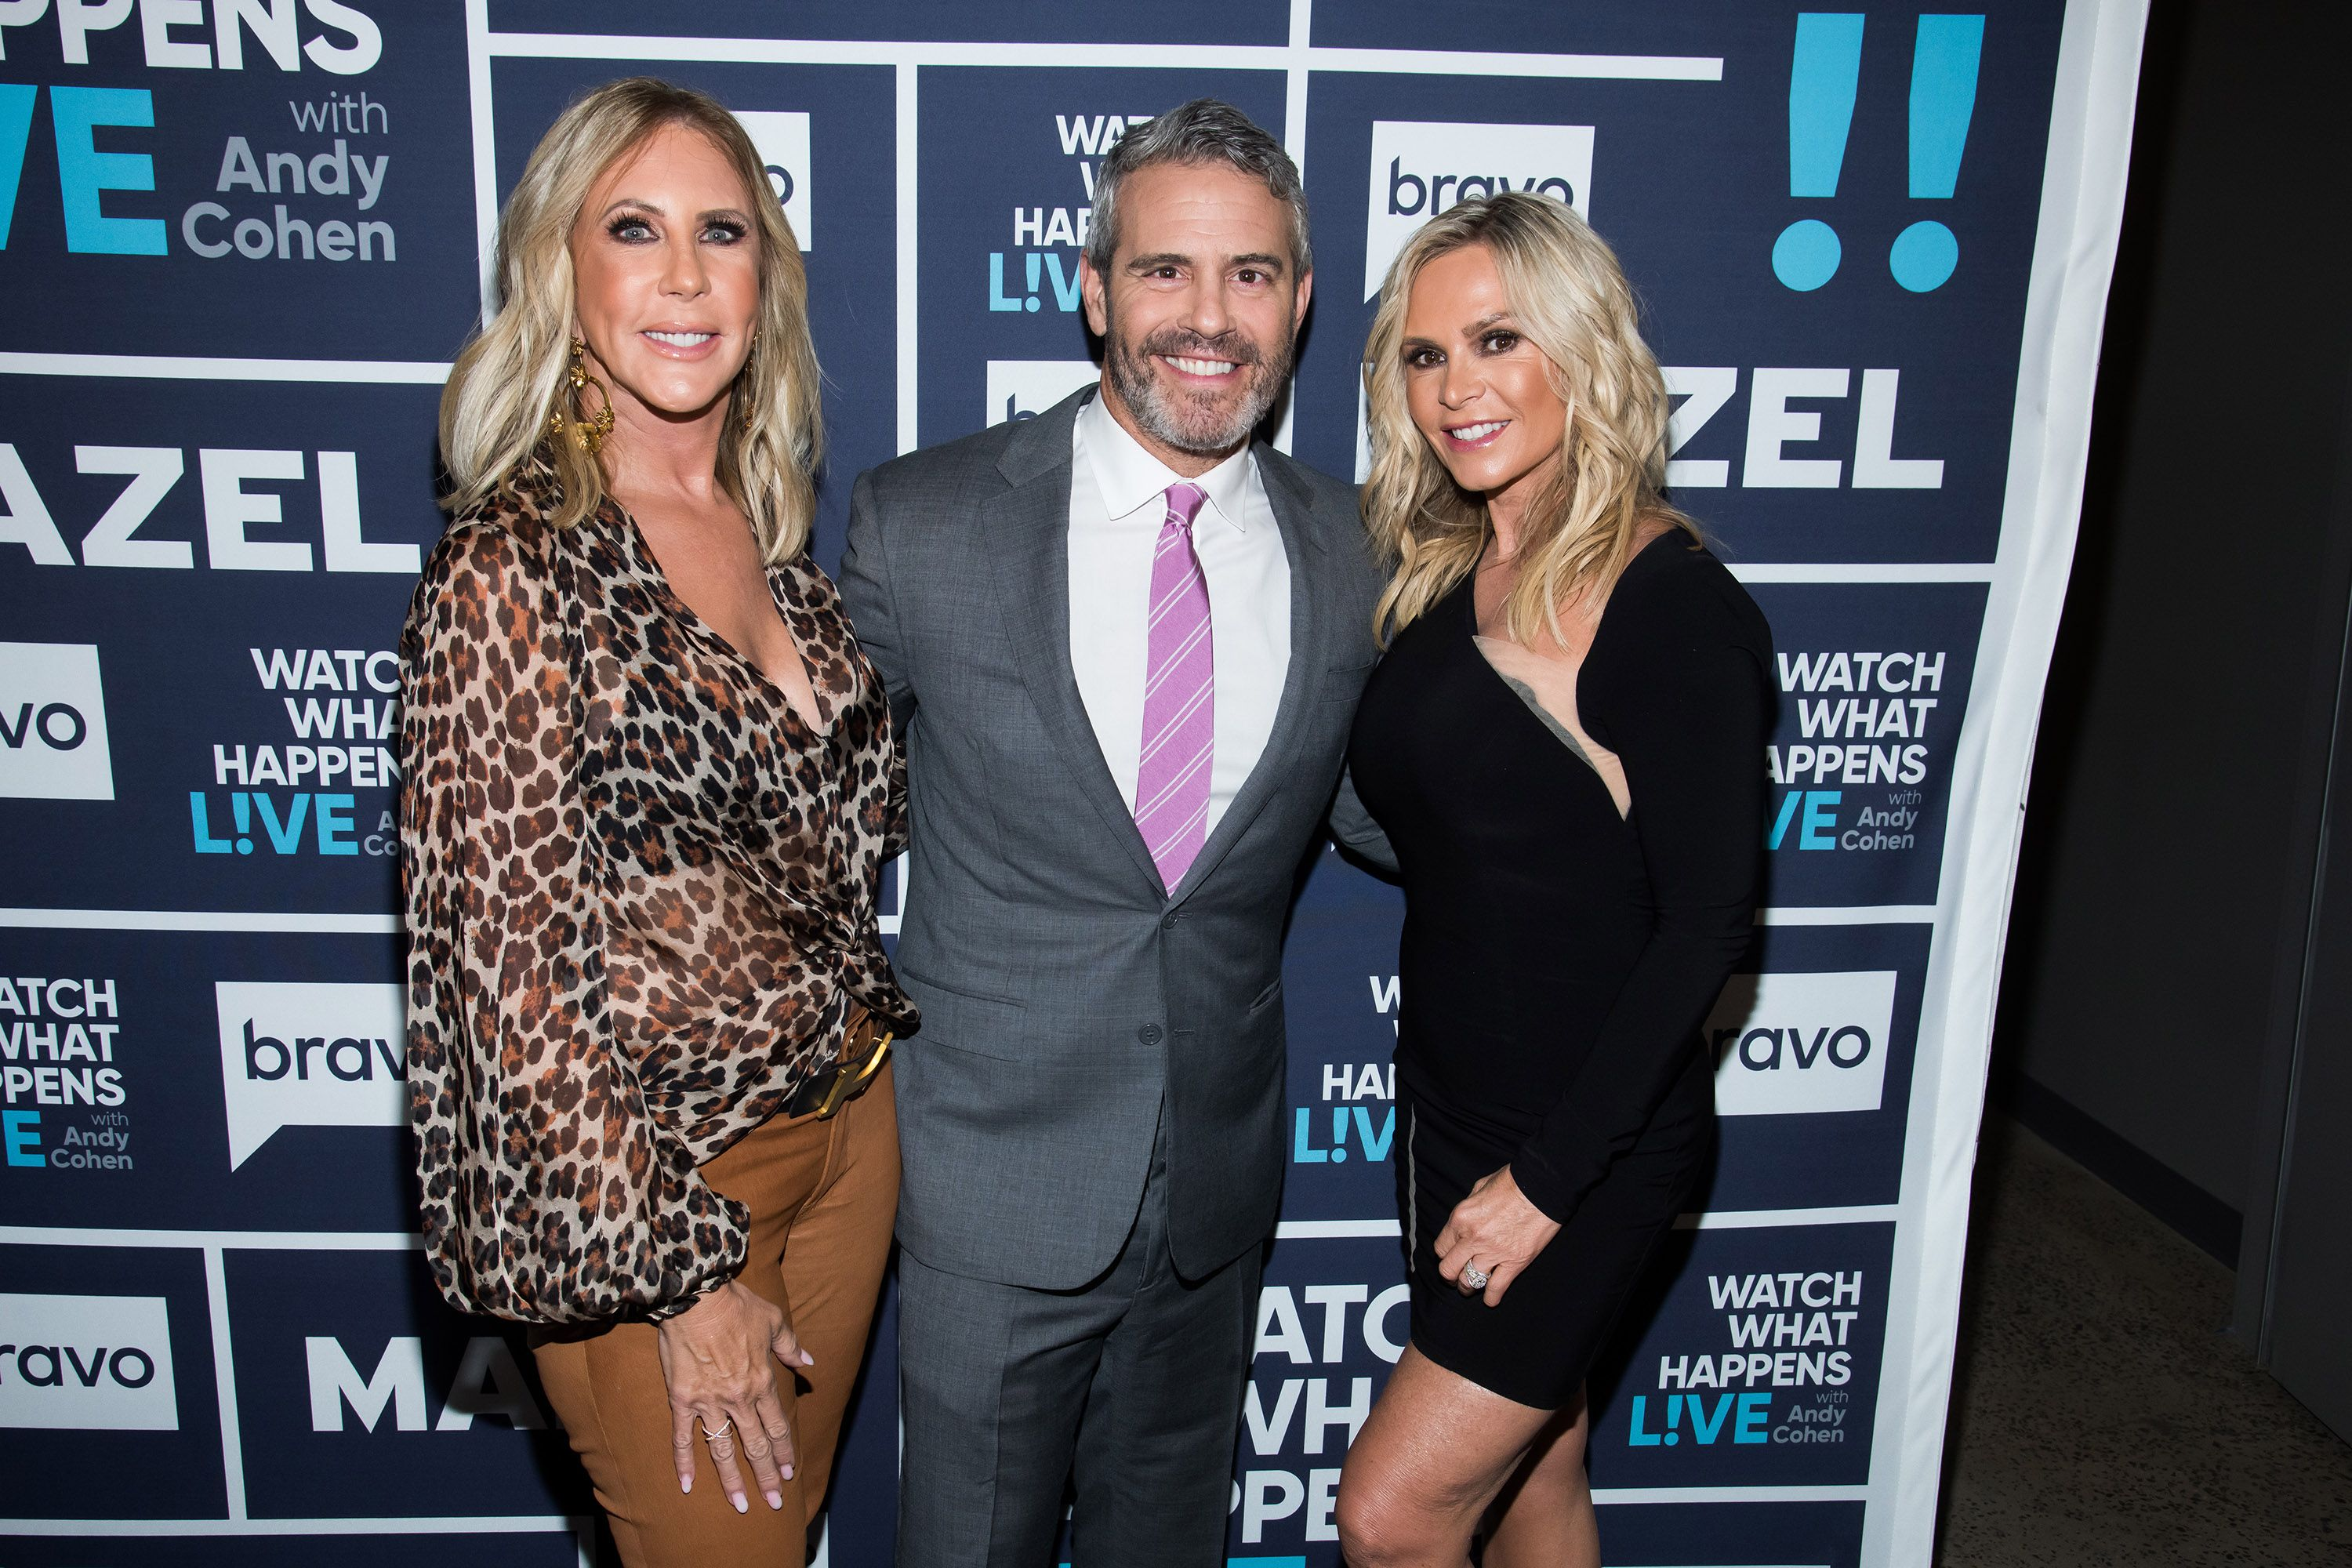 Vicki Gunvalson and Tamra Judge pose for a photo with Andy Cohen.